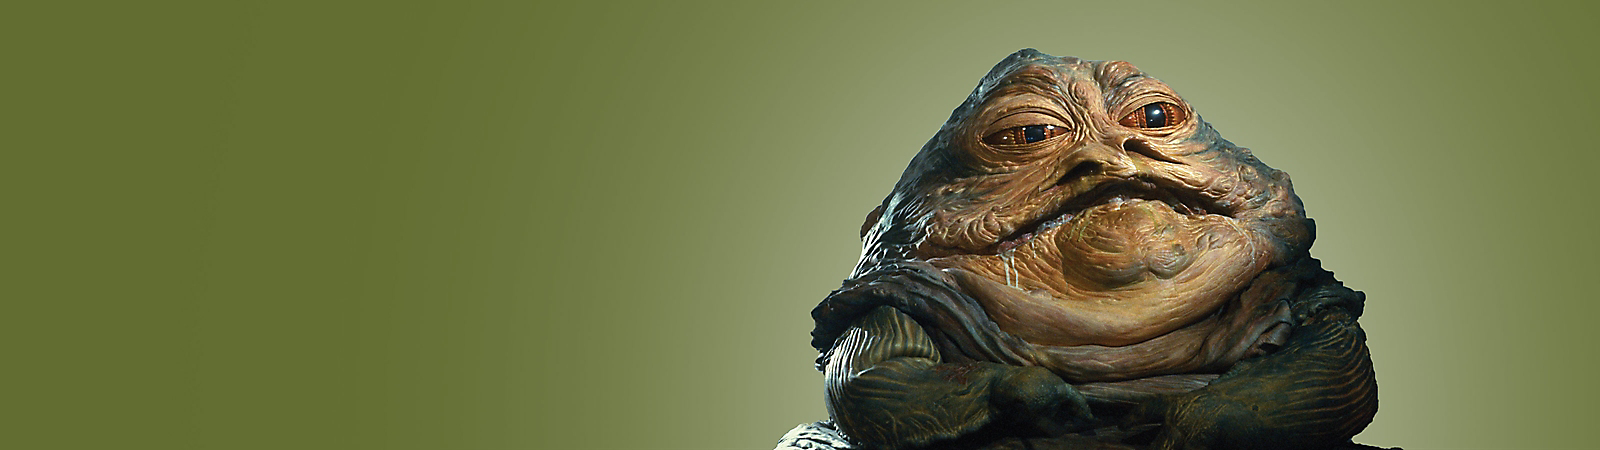 Background image of Jabba the Hutt